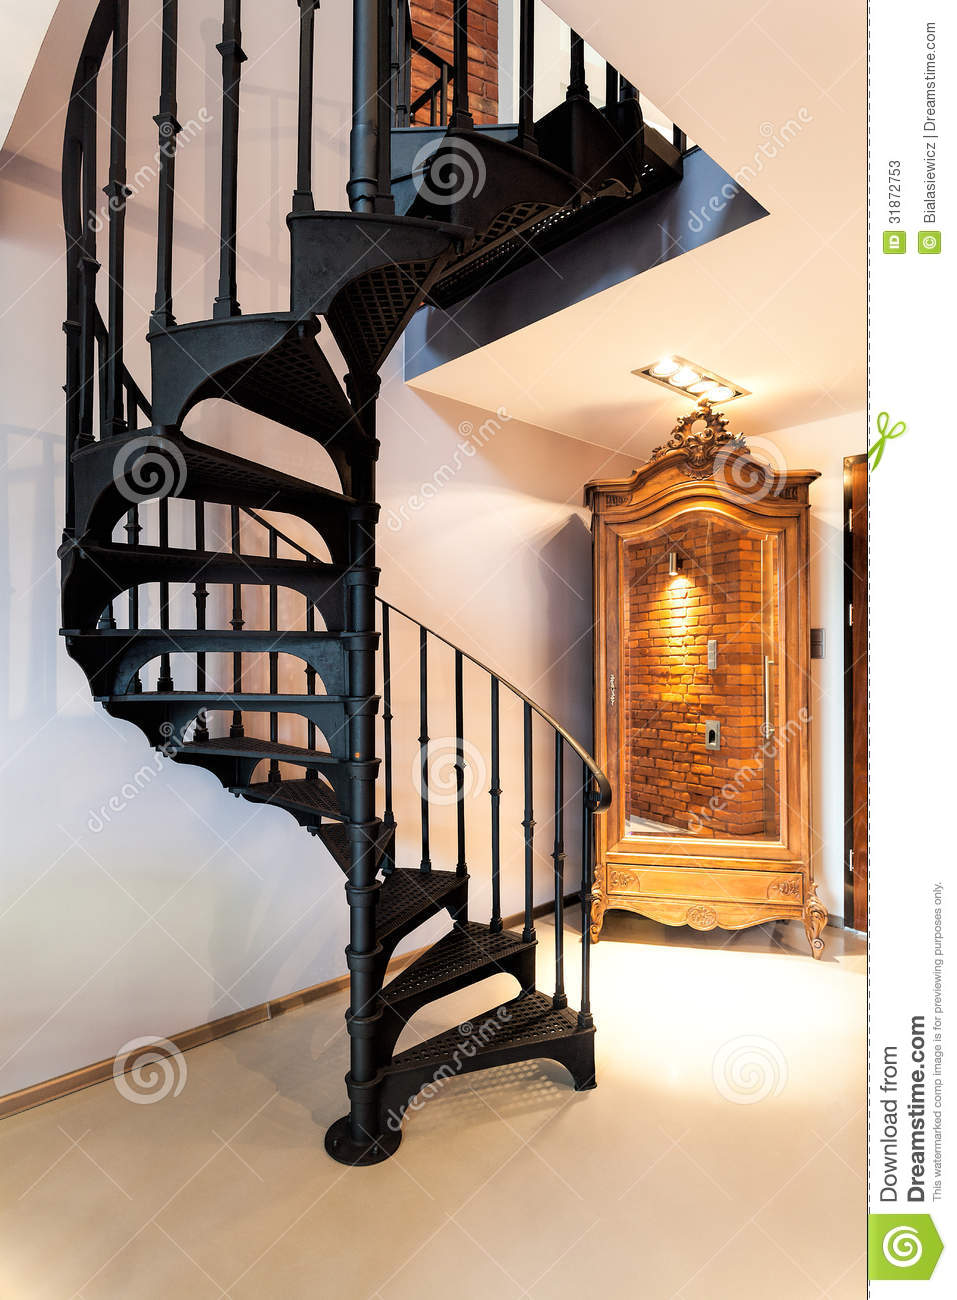 wendeltreppe und eine garderobe stockfotos bild 31872753. Black Bedroom Furniture Sets. Home Design Ideas